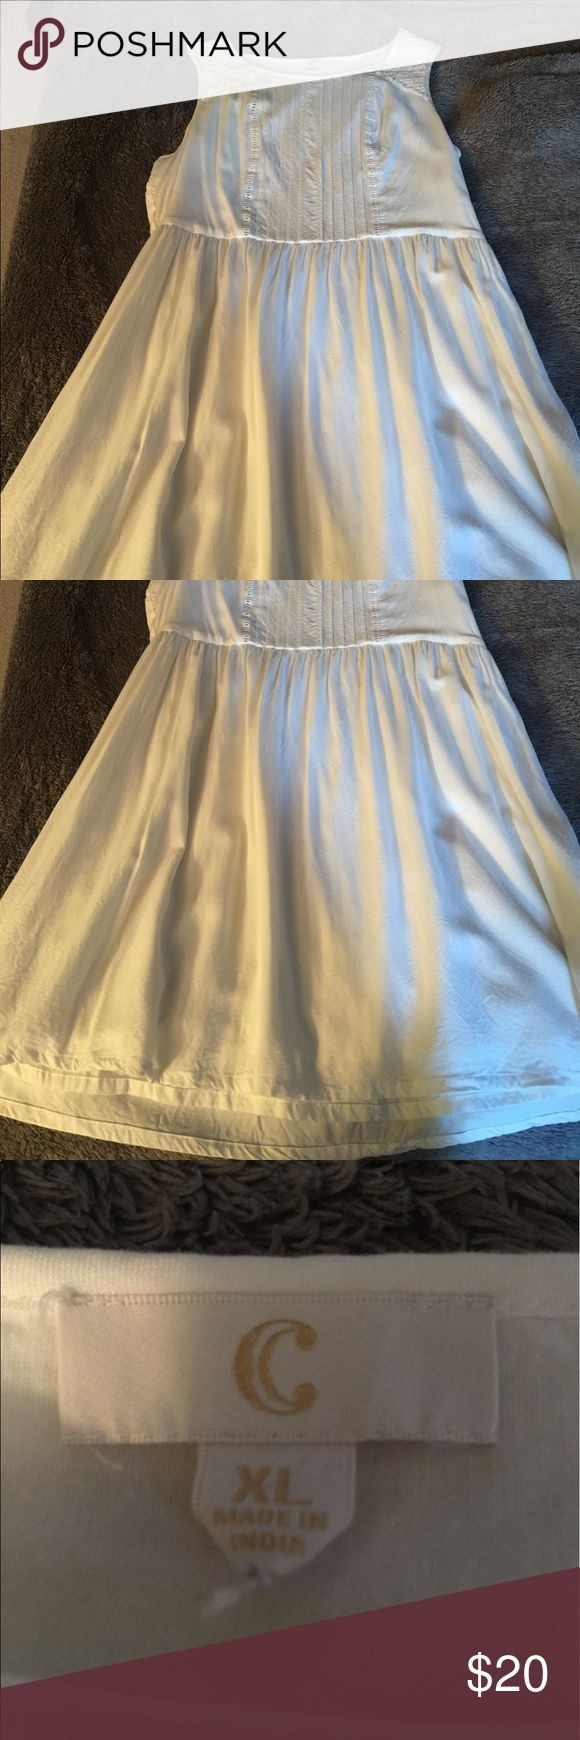 White Cotton dress Super comfy white cotton sundress from Charming Charlie! Not see through at all, like new condition- only worn once!  Hits around knee length Charming Charlie Dresses Mini